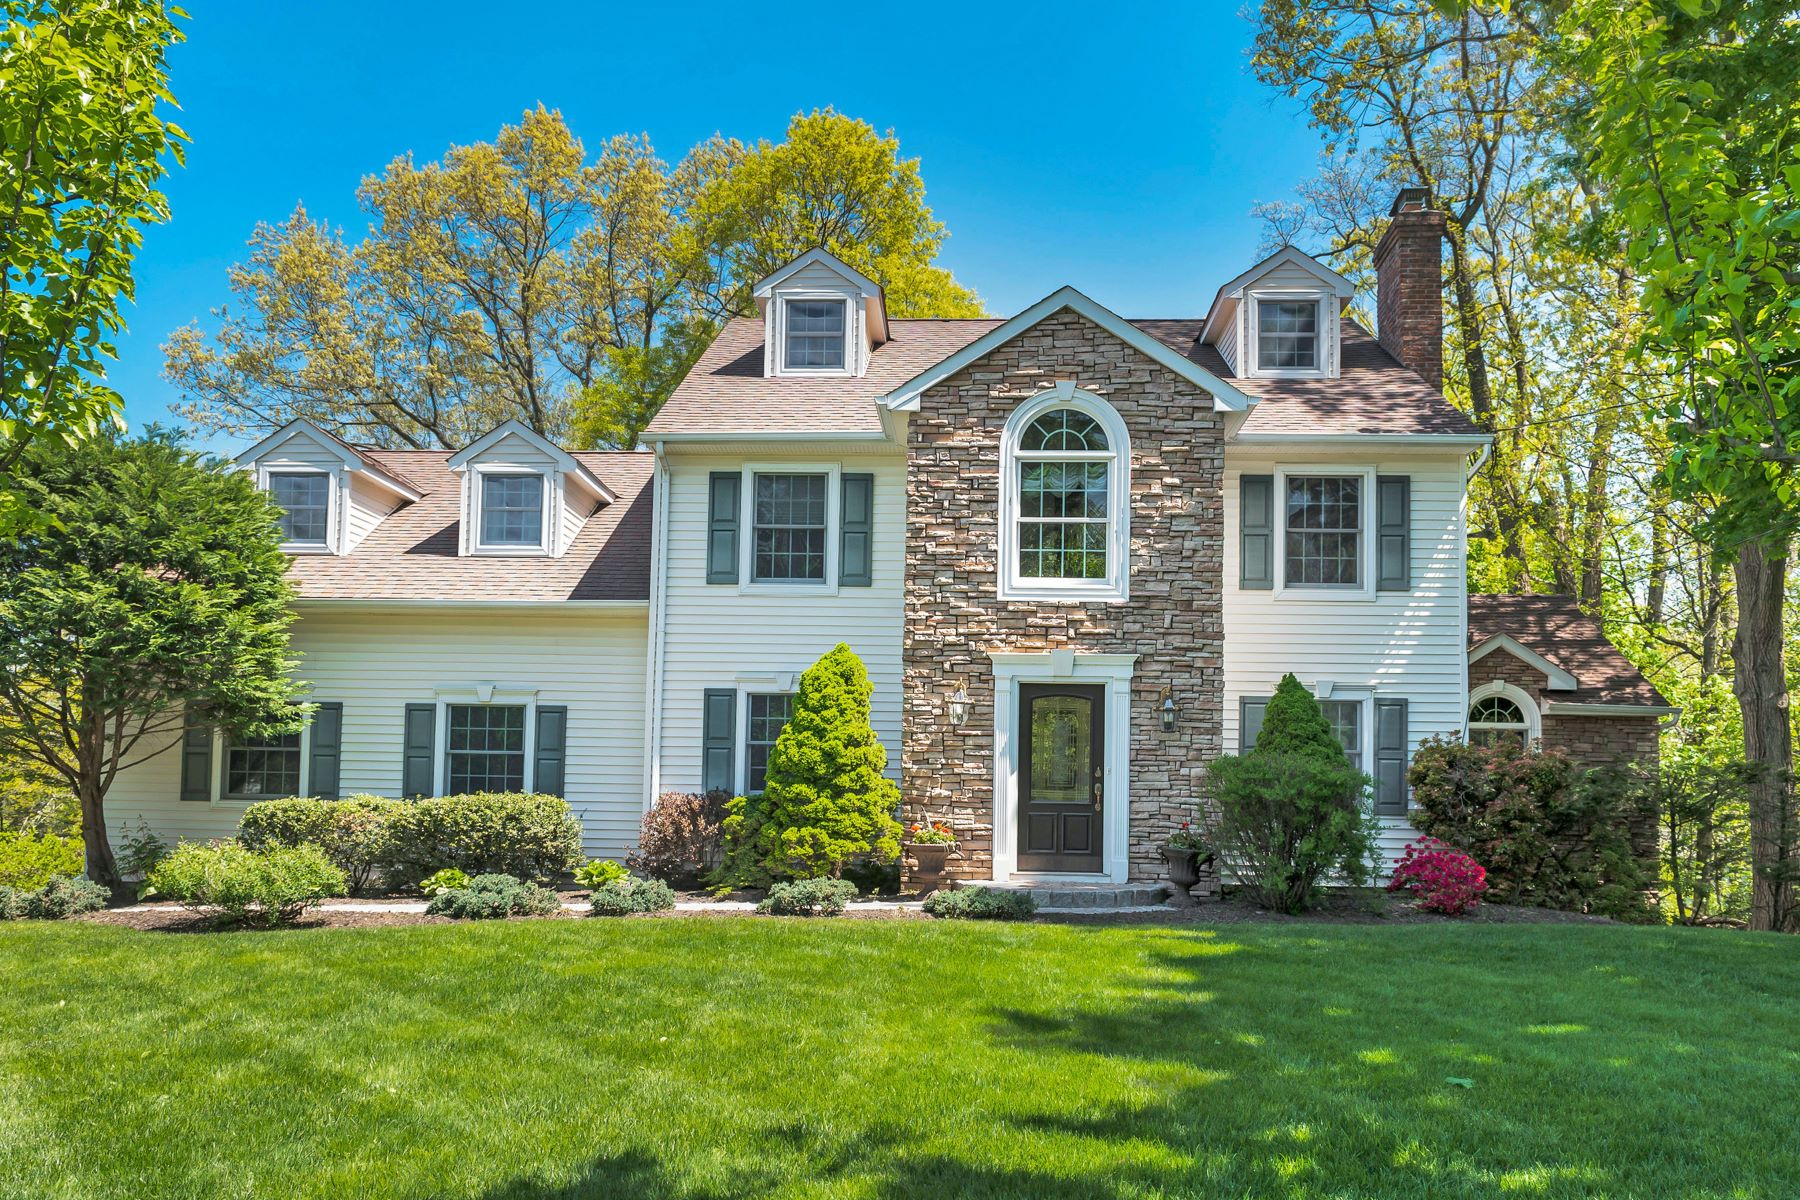 Single Family Homes for Sale at Stunning Colonial 48 Pine Street Chatham Township, New Jersey 07928 United States